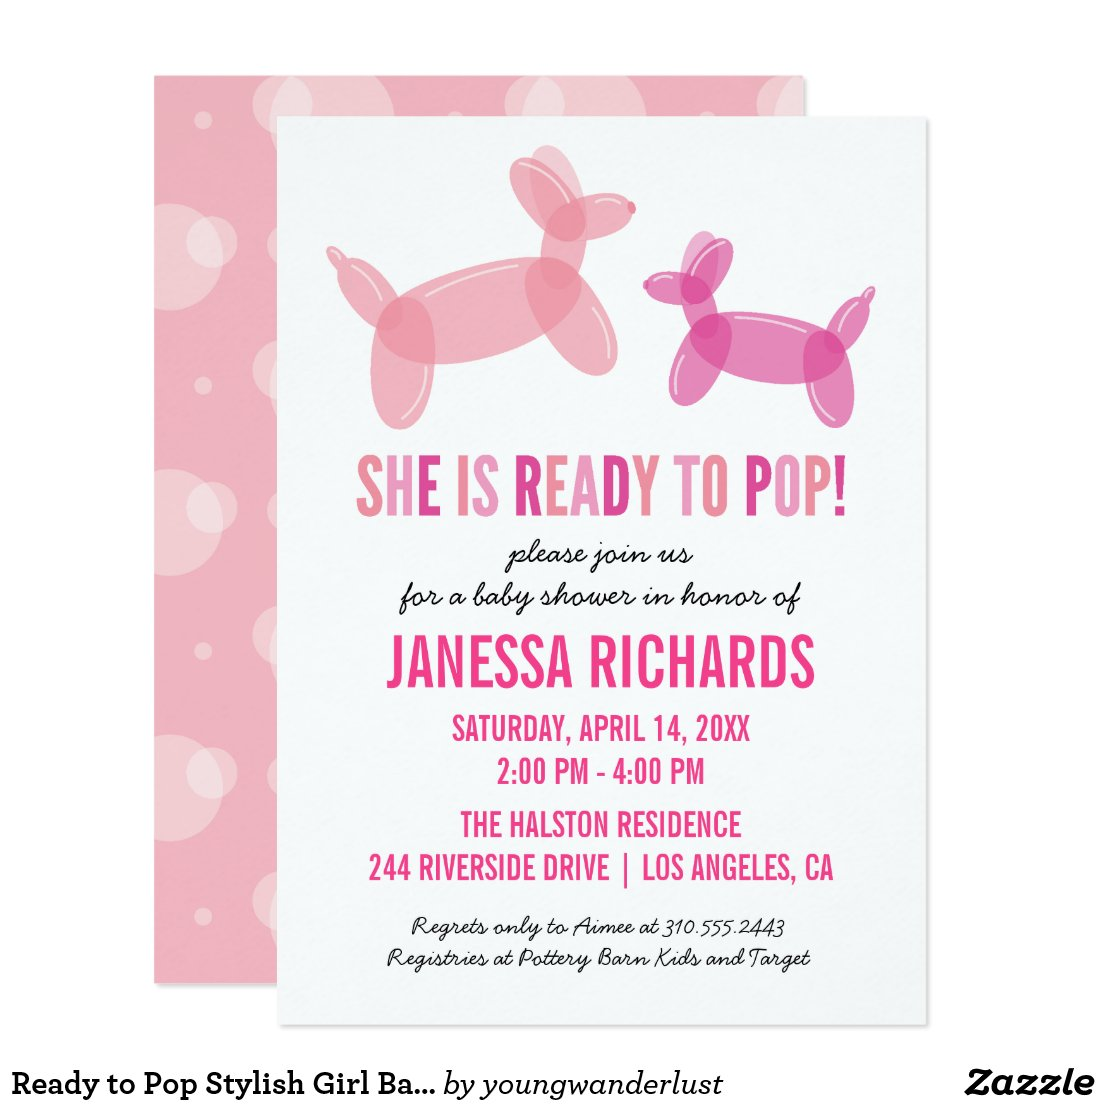 Ready to Pop Stylish Girl Baby Shower Invitations